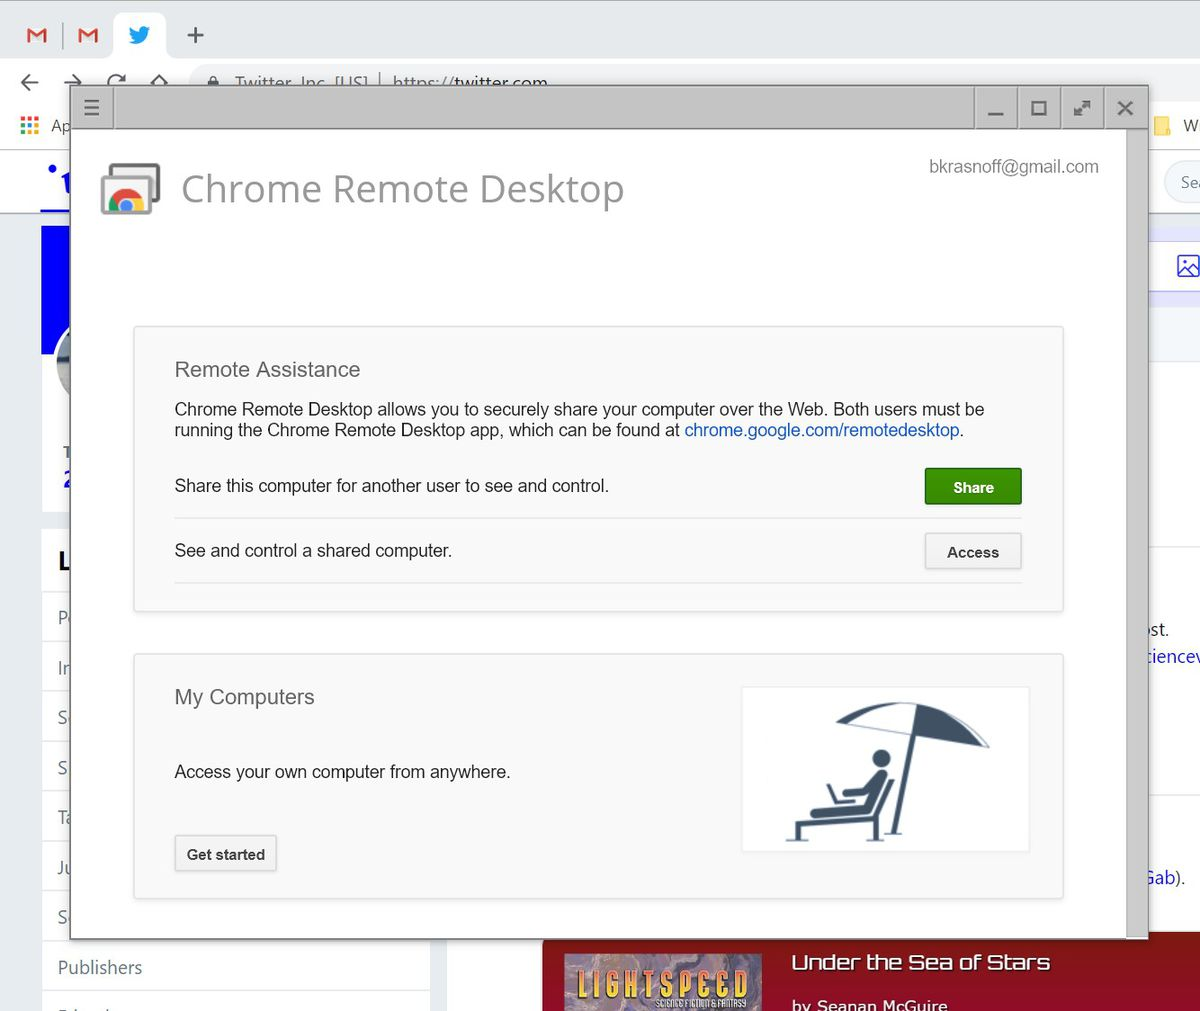 How to access a remote computer using Google Remote Desktop - The Verge